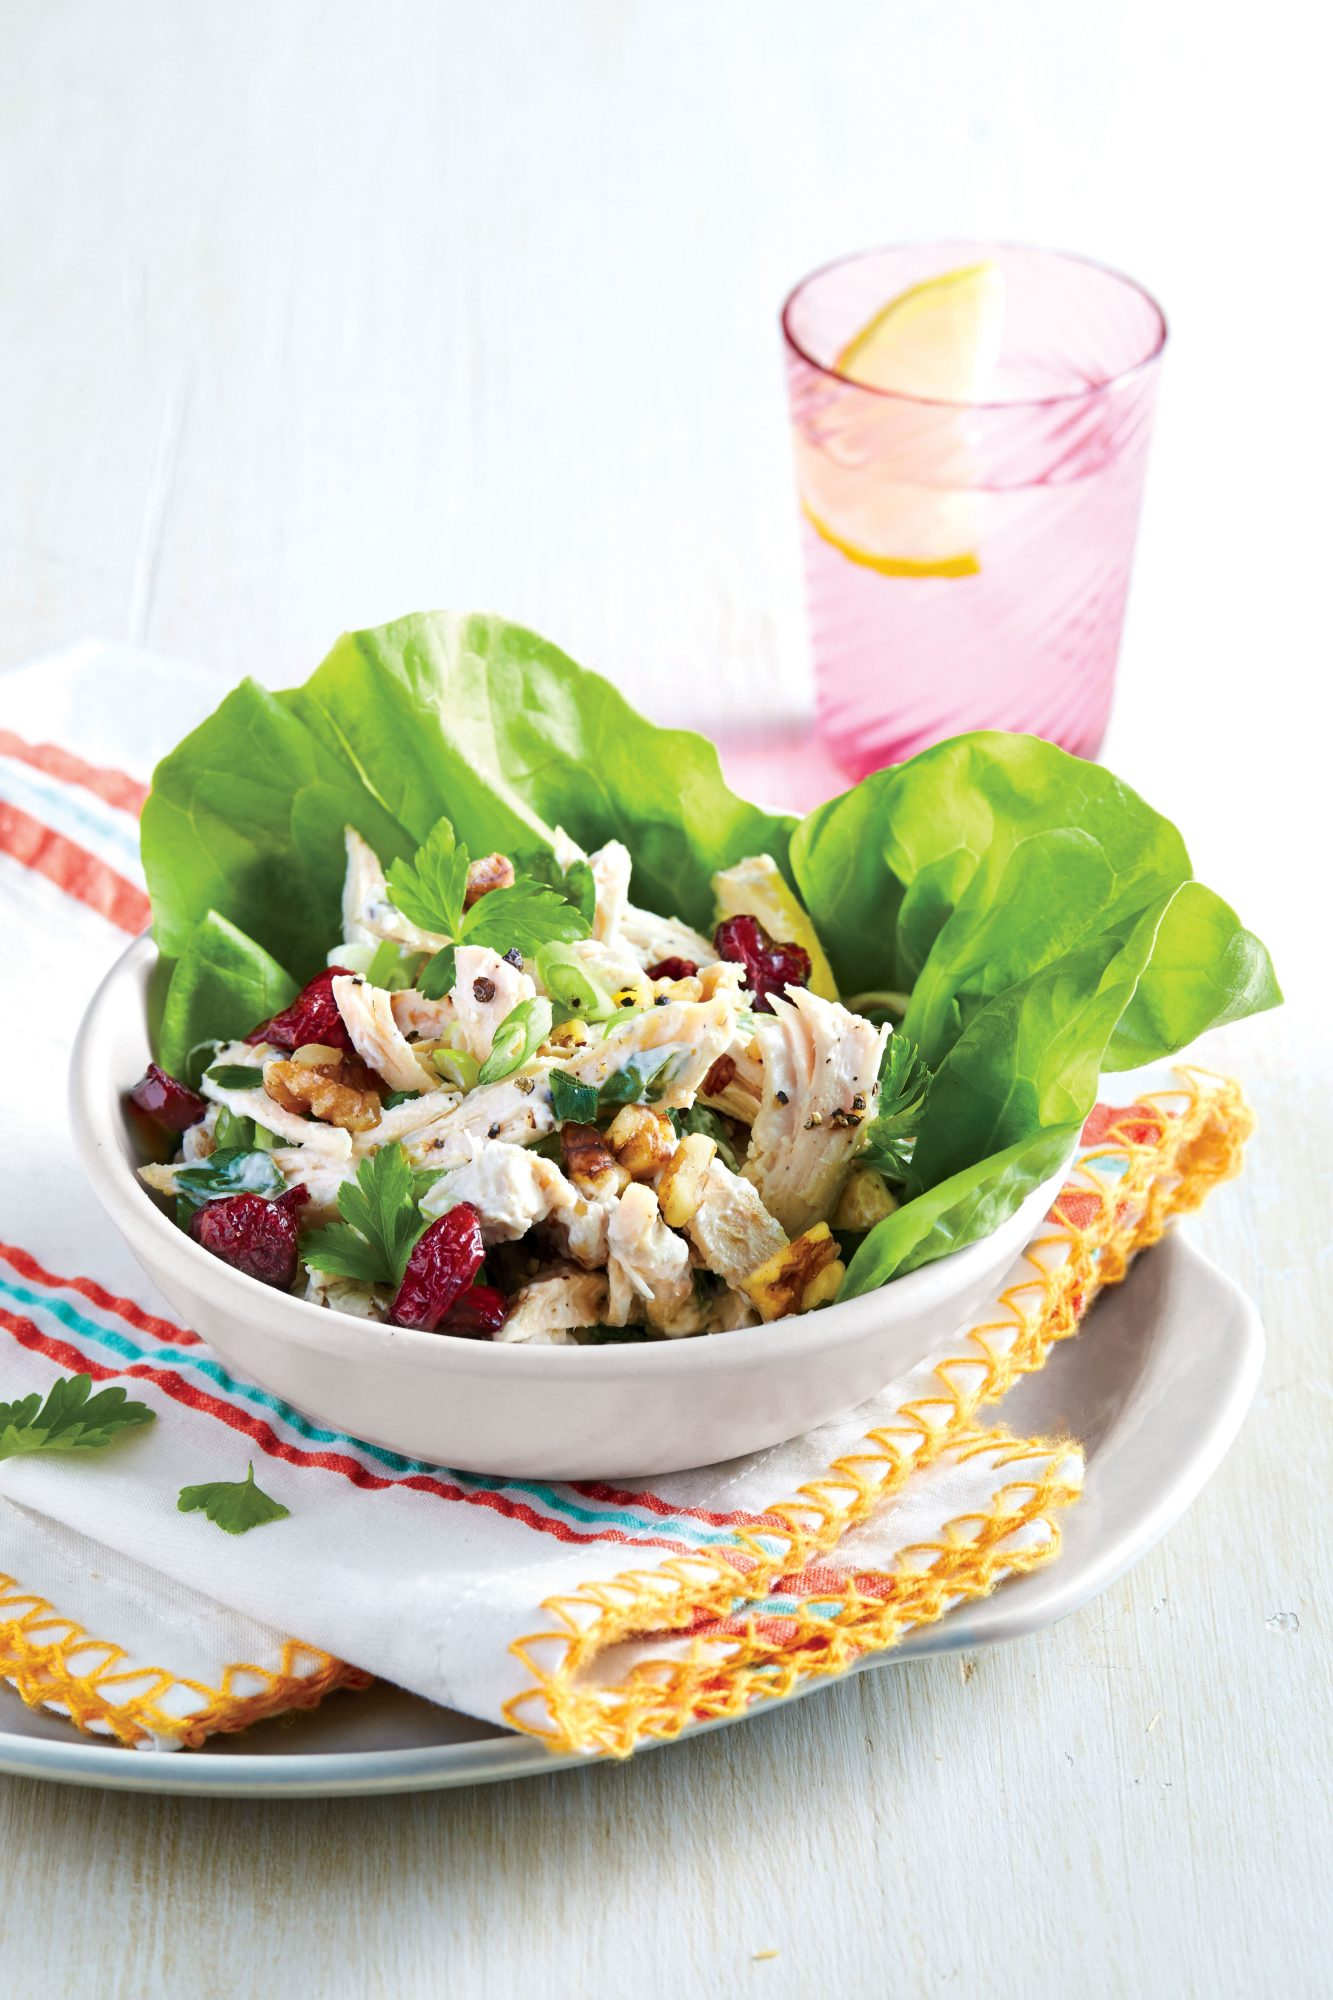 We Tasted 6 Store-Bought Chicken Salads, and These Are Our Favorites